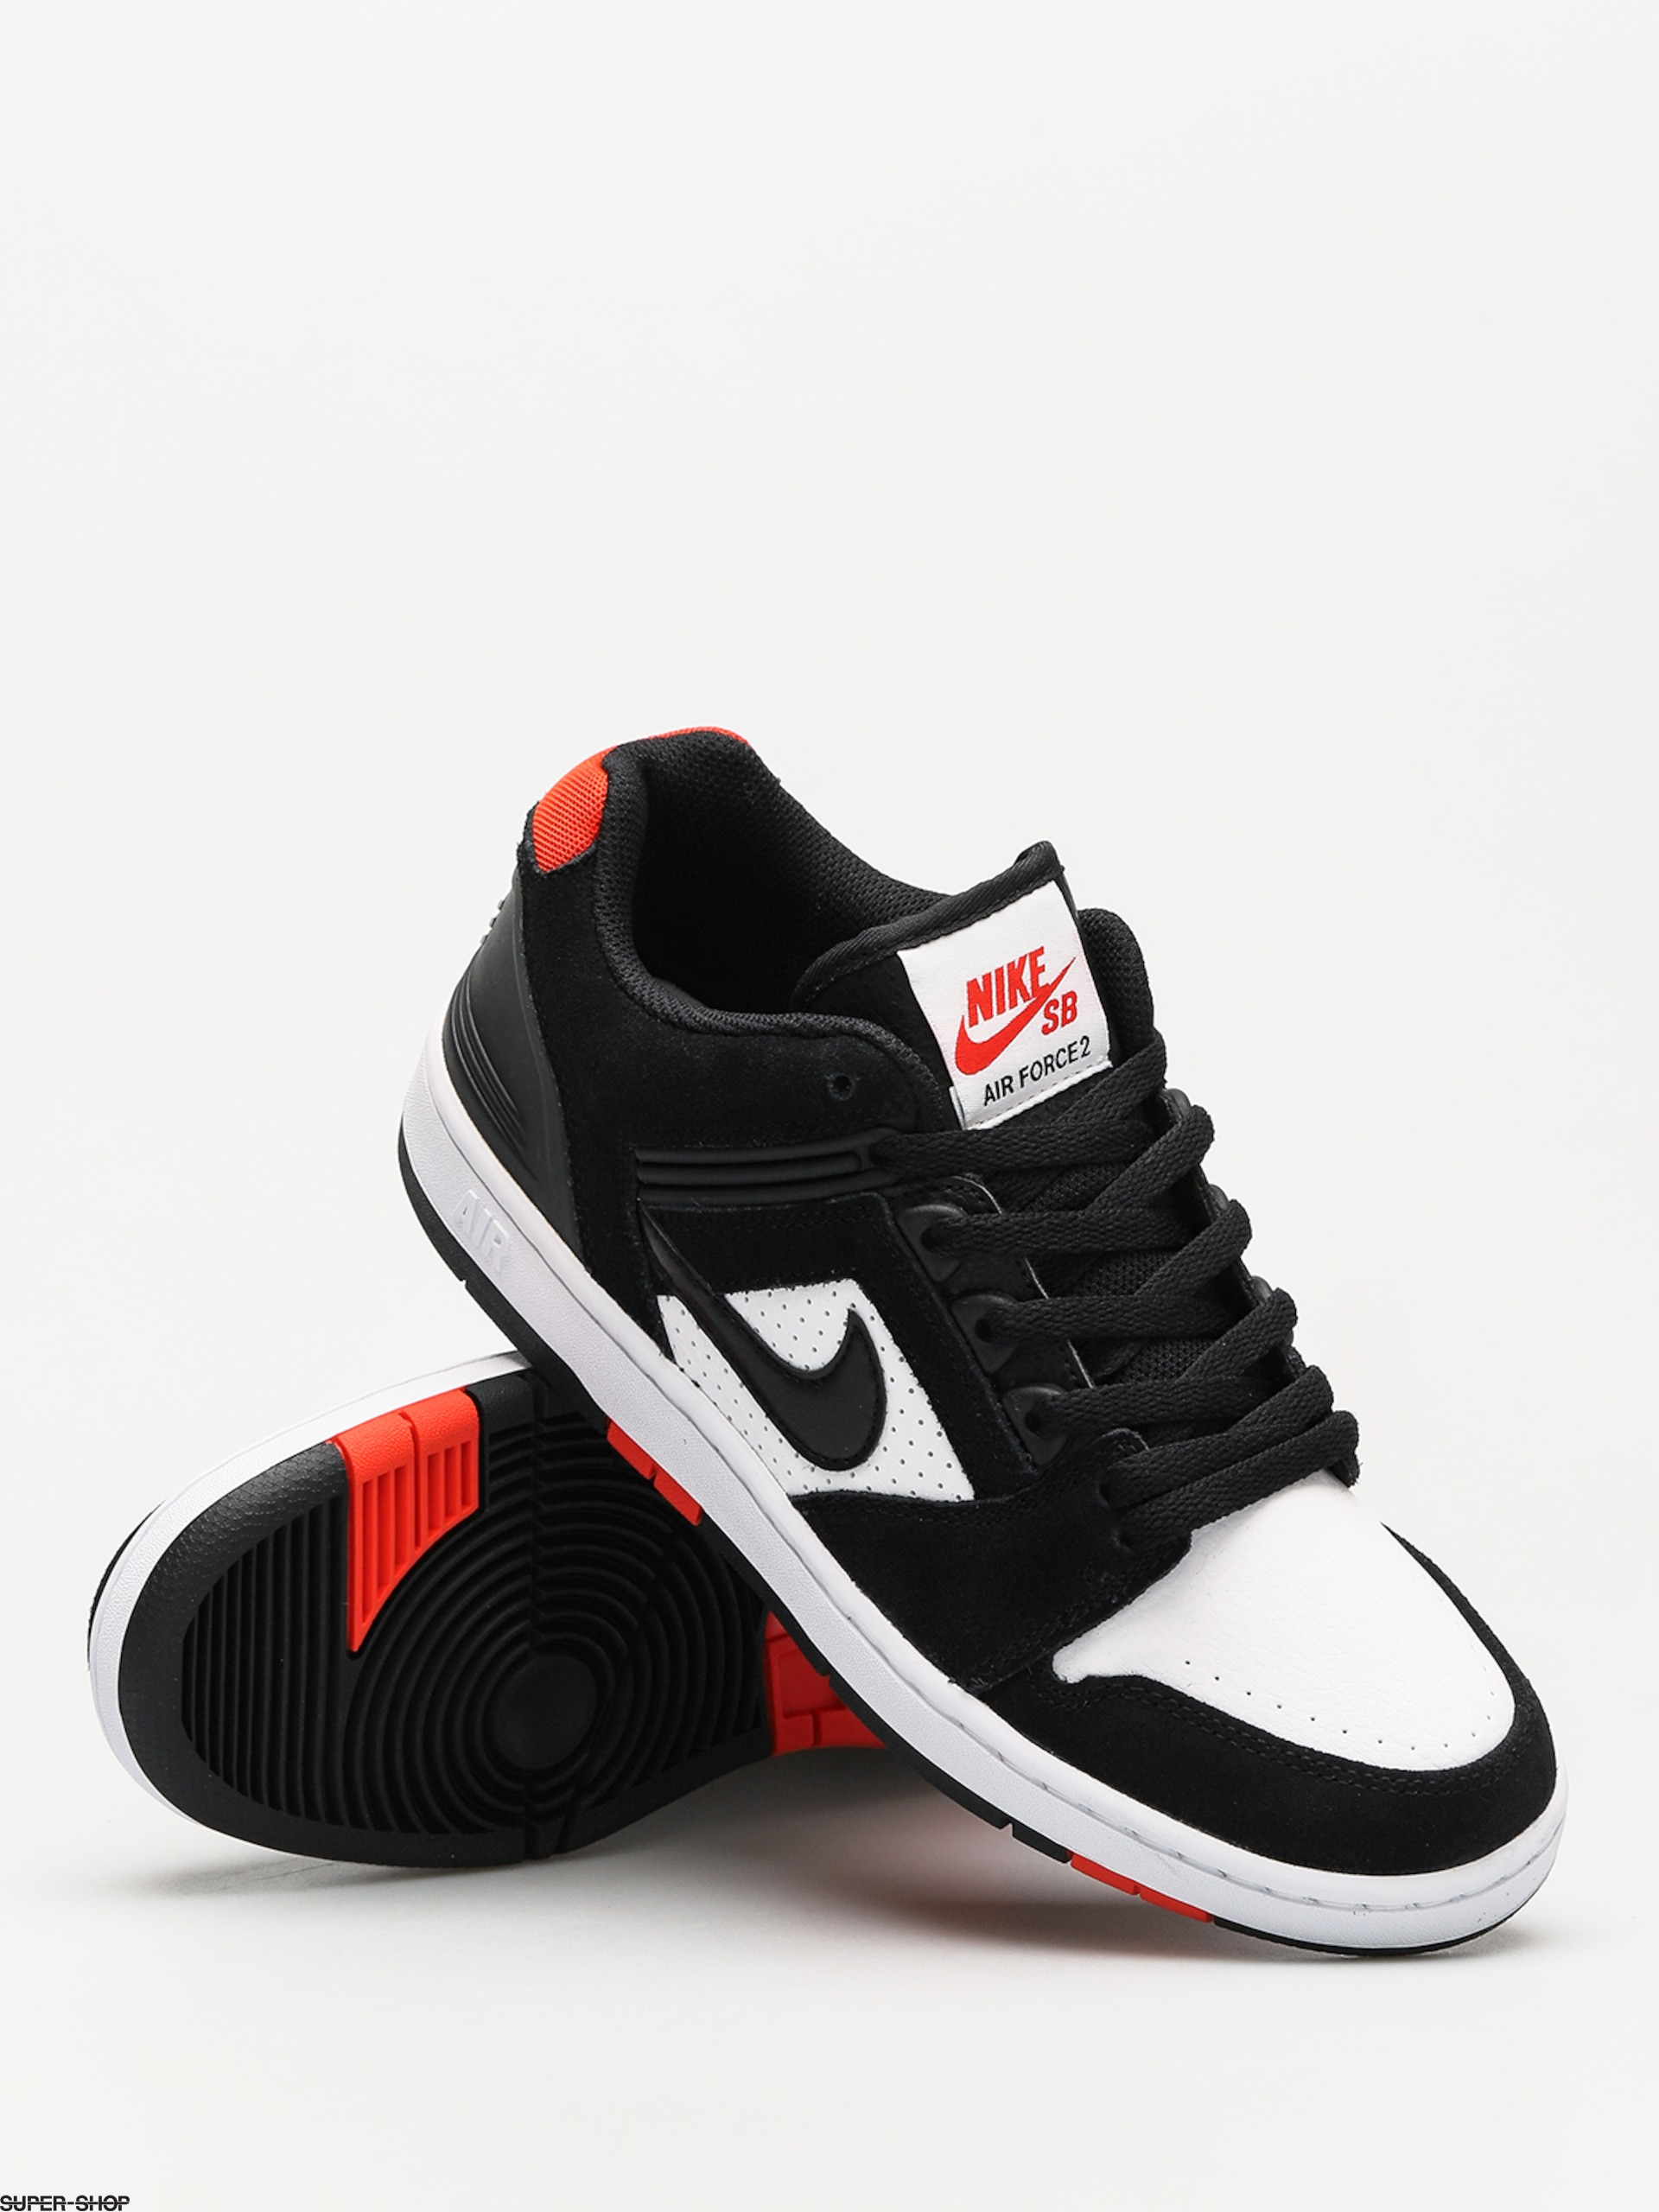 1861dcf9a80c Nike blackblack Habanero Red Air Sb Shoes Force White Low Ii rUqragwBf